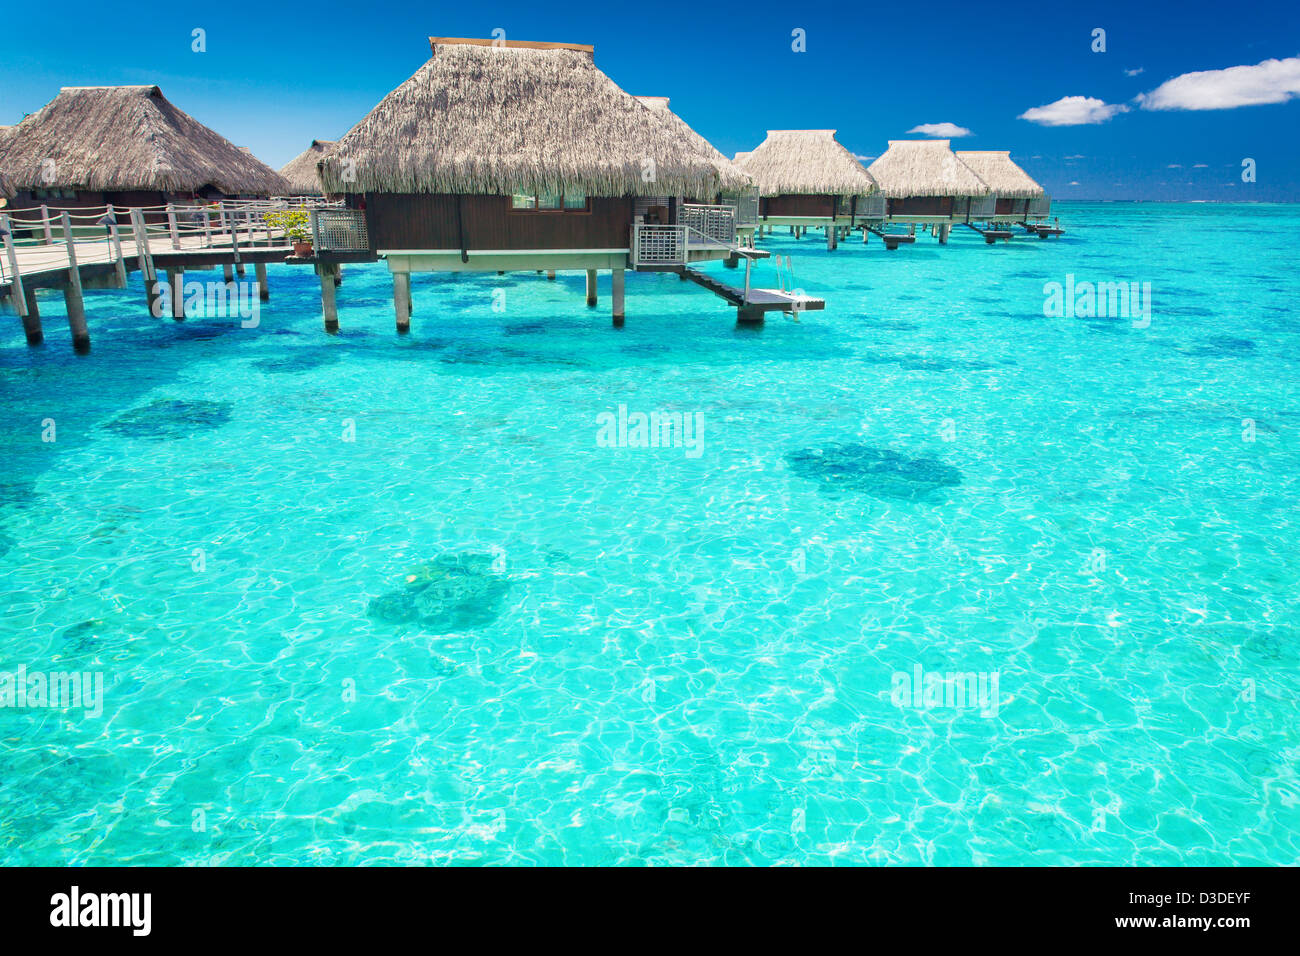 Water villas in the ocean with steps into turquoise lagoon - Stock Image